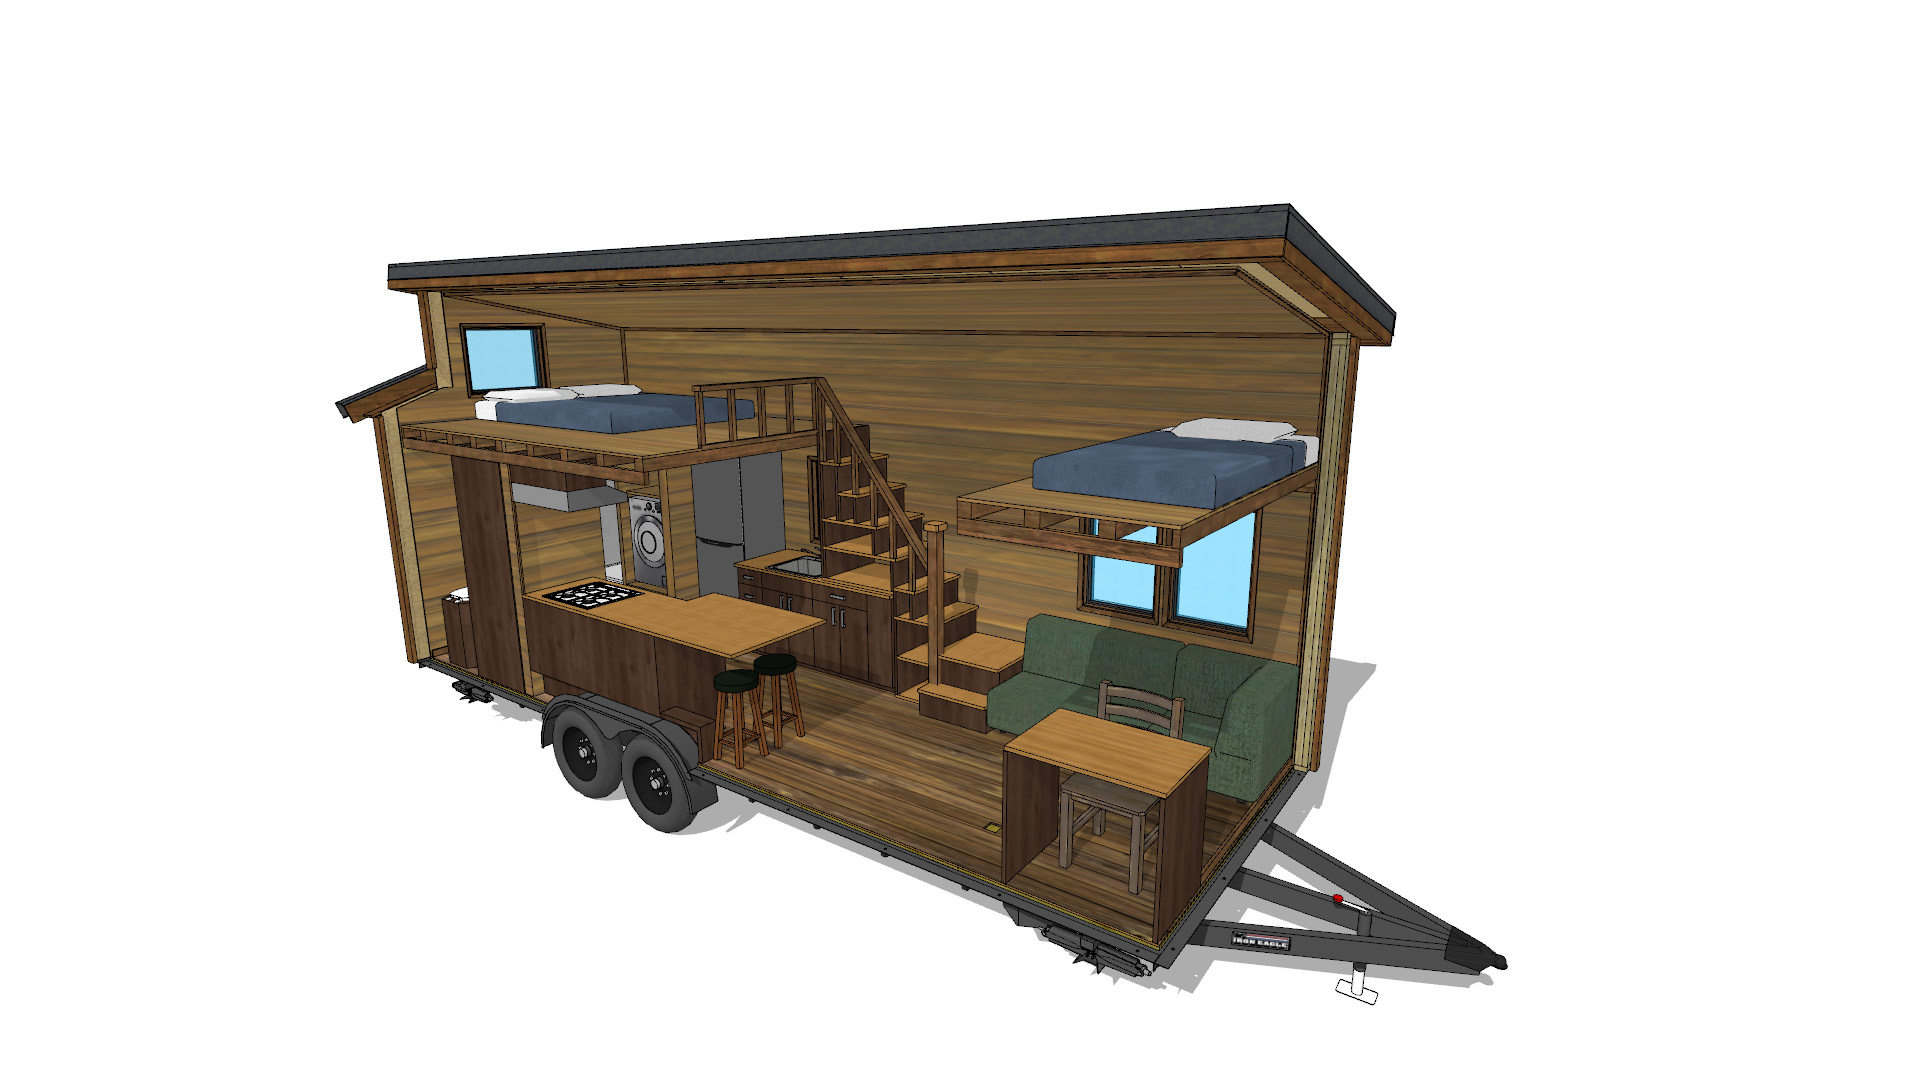 Tiny Home Design: Cider Box Tiny House Plans 40% Off